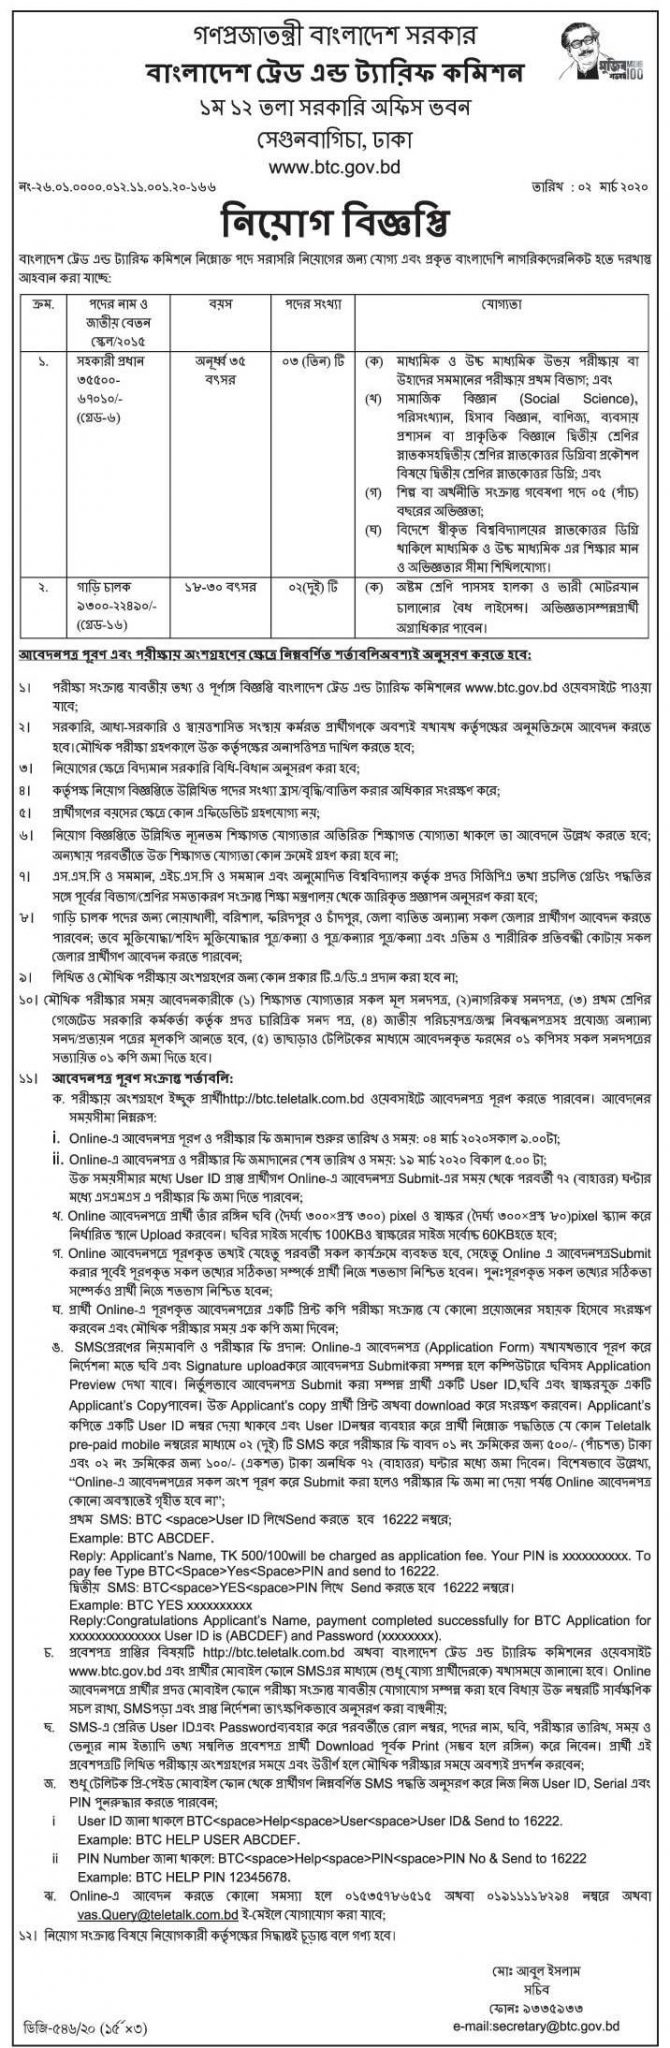 Bangladesh Tariff Commission Job Circular 2020